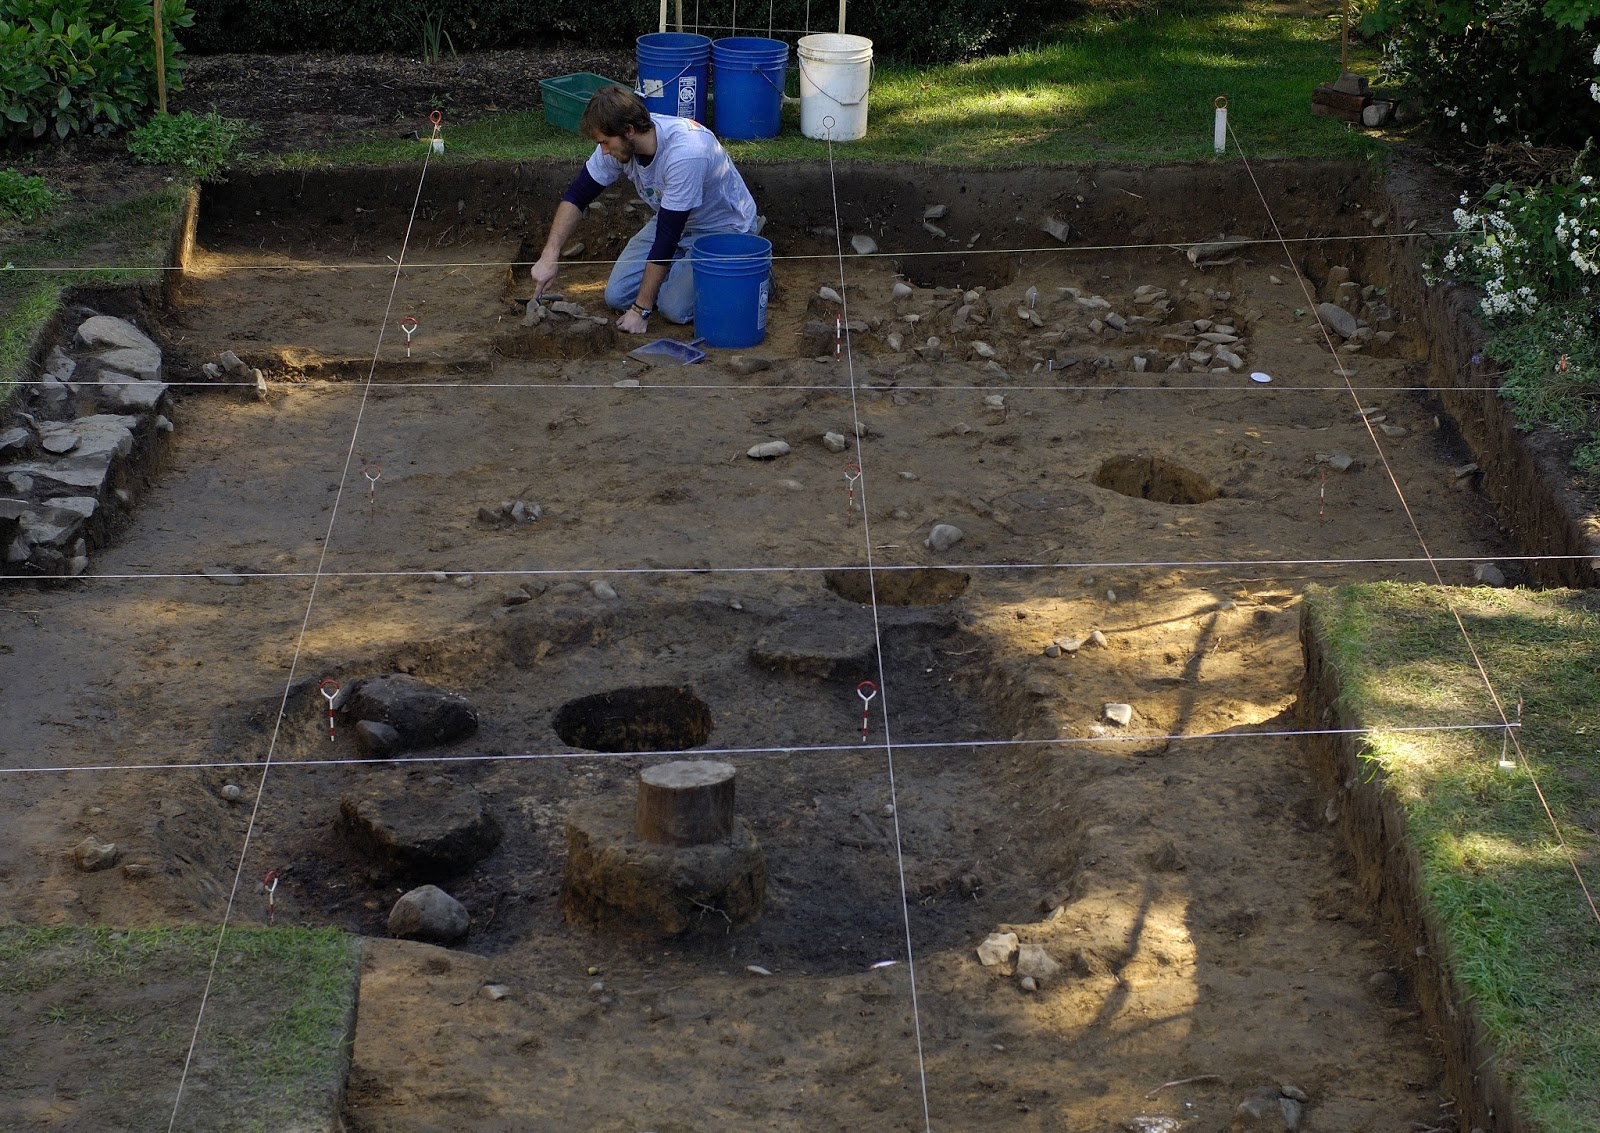 Online Doctorate in Archaeology Programs | Archaeology PhD Degrees